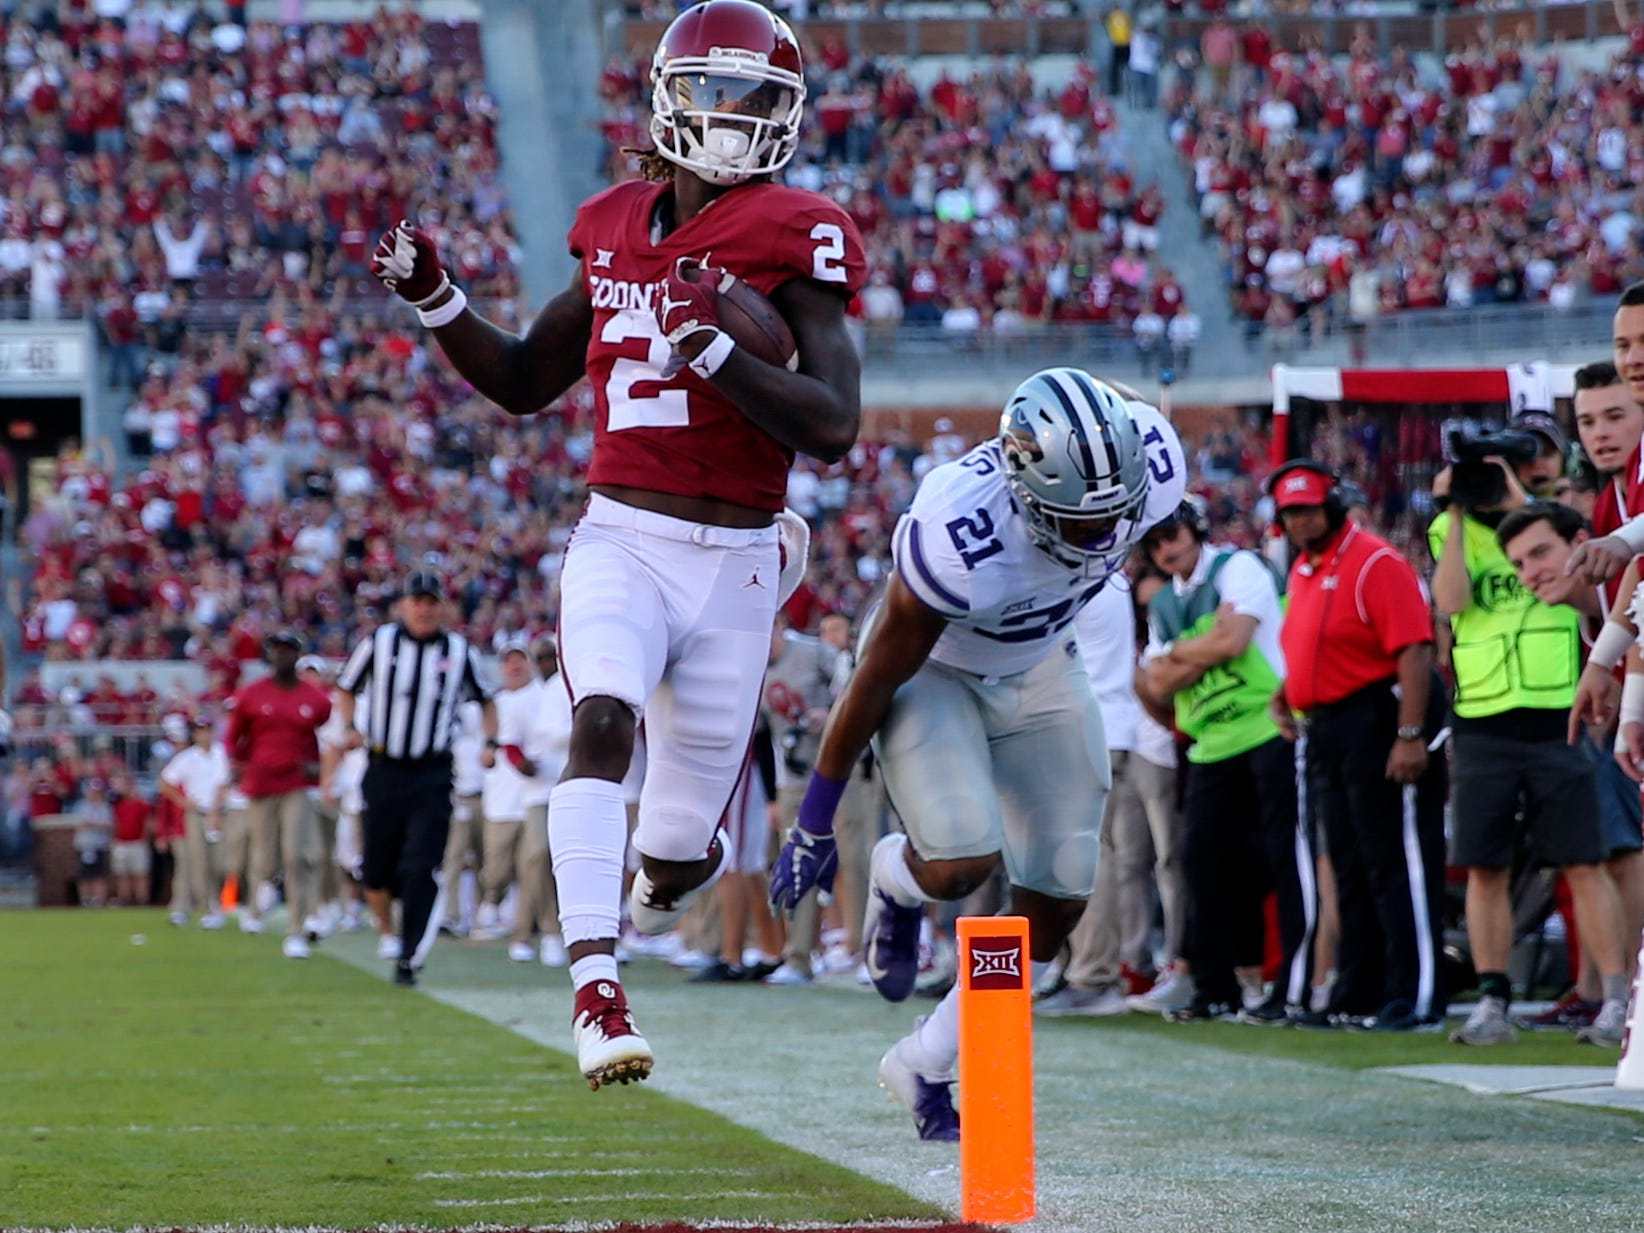 Oklahoma Sooners wide receiver CeeDee Lamb (2) runs for a touchdown past Kansas State Wildcats defensive back Kevion McGee (14) during the second half at Gaylord Family - Oklahoma Memorial Stadium.